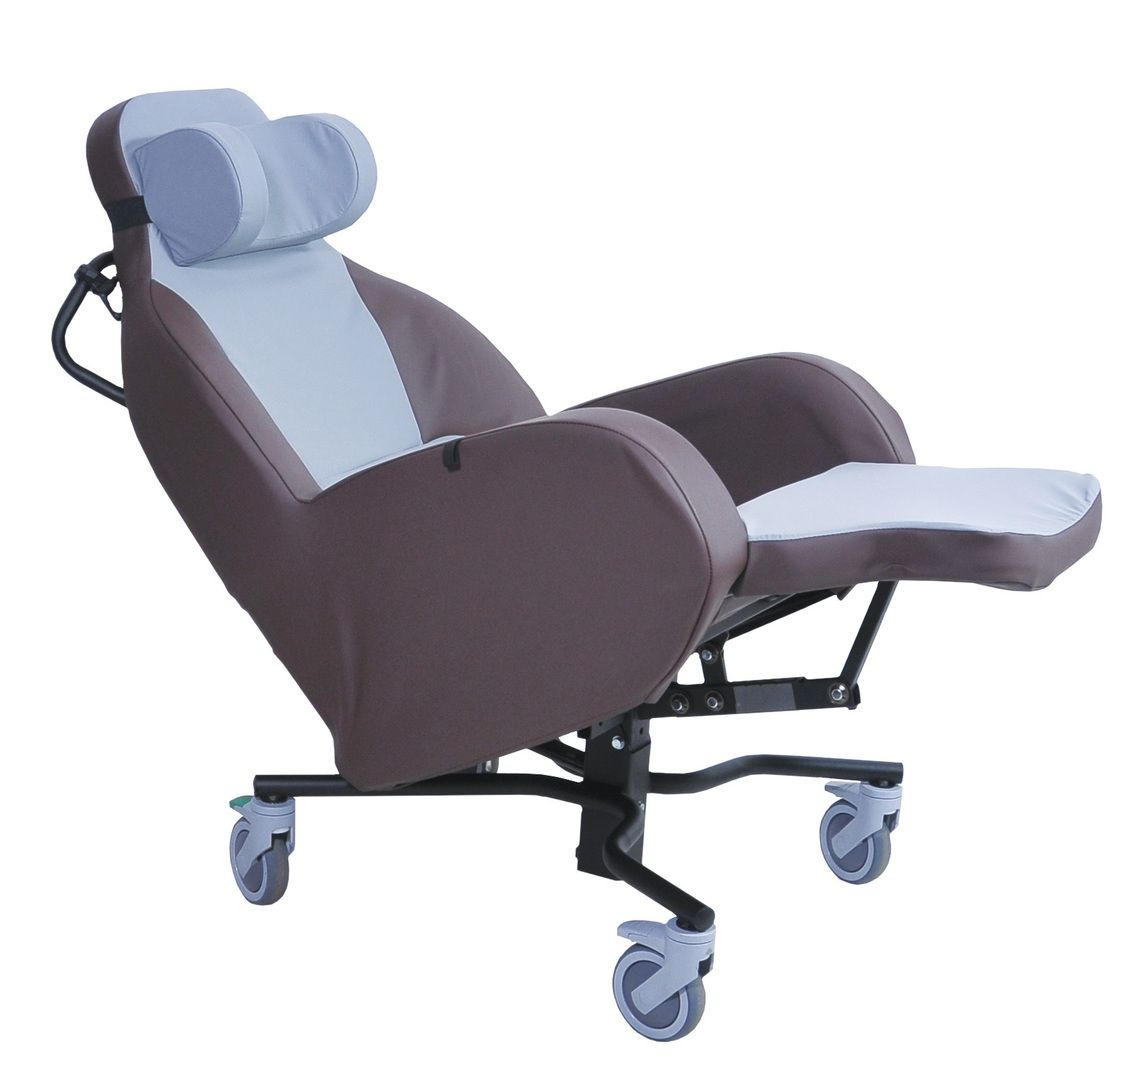 The Integra Shell Seat shown in a tilted position with leg extension up